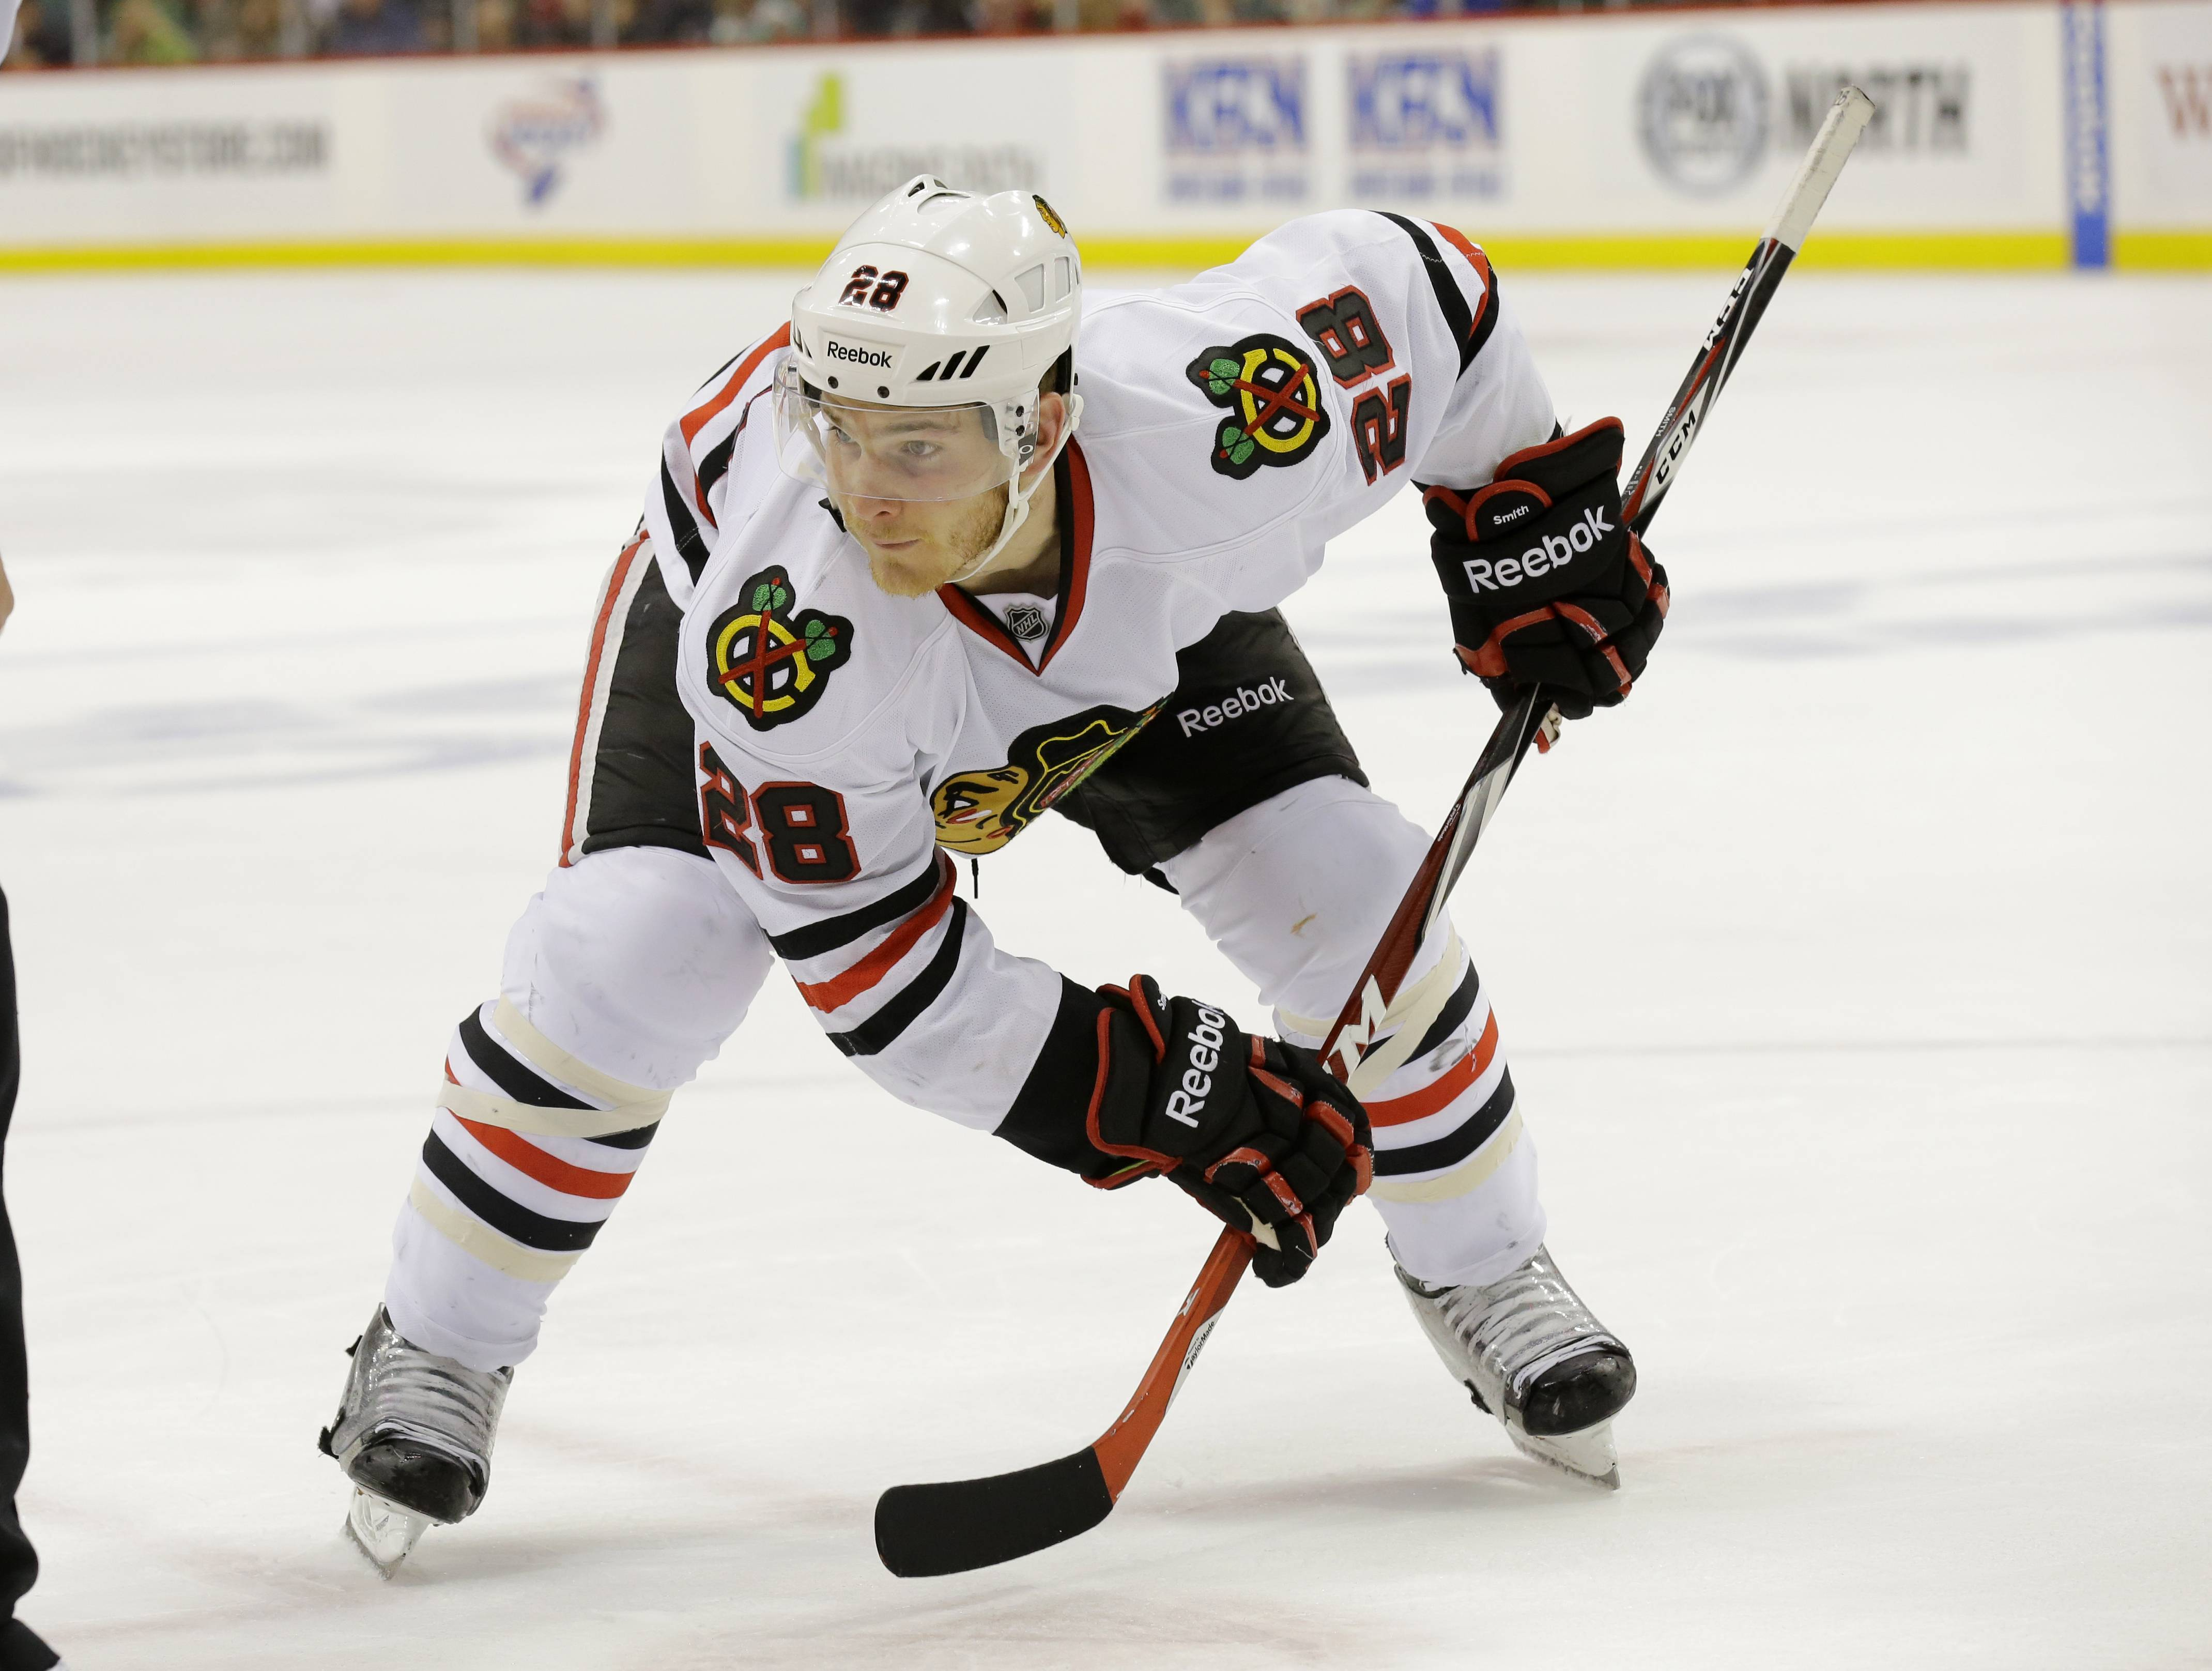 Ben Smith will skate on the Blackhawks' top line with Jonathan Toews and Bryan Bickell in Friday night's Game 4 against the Wild.